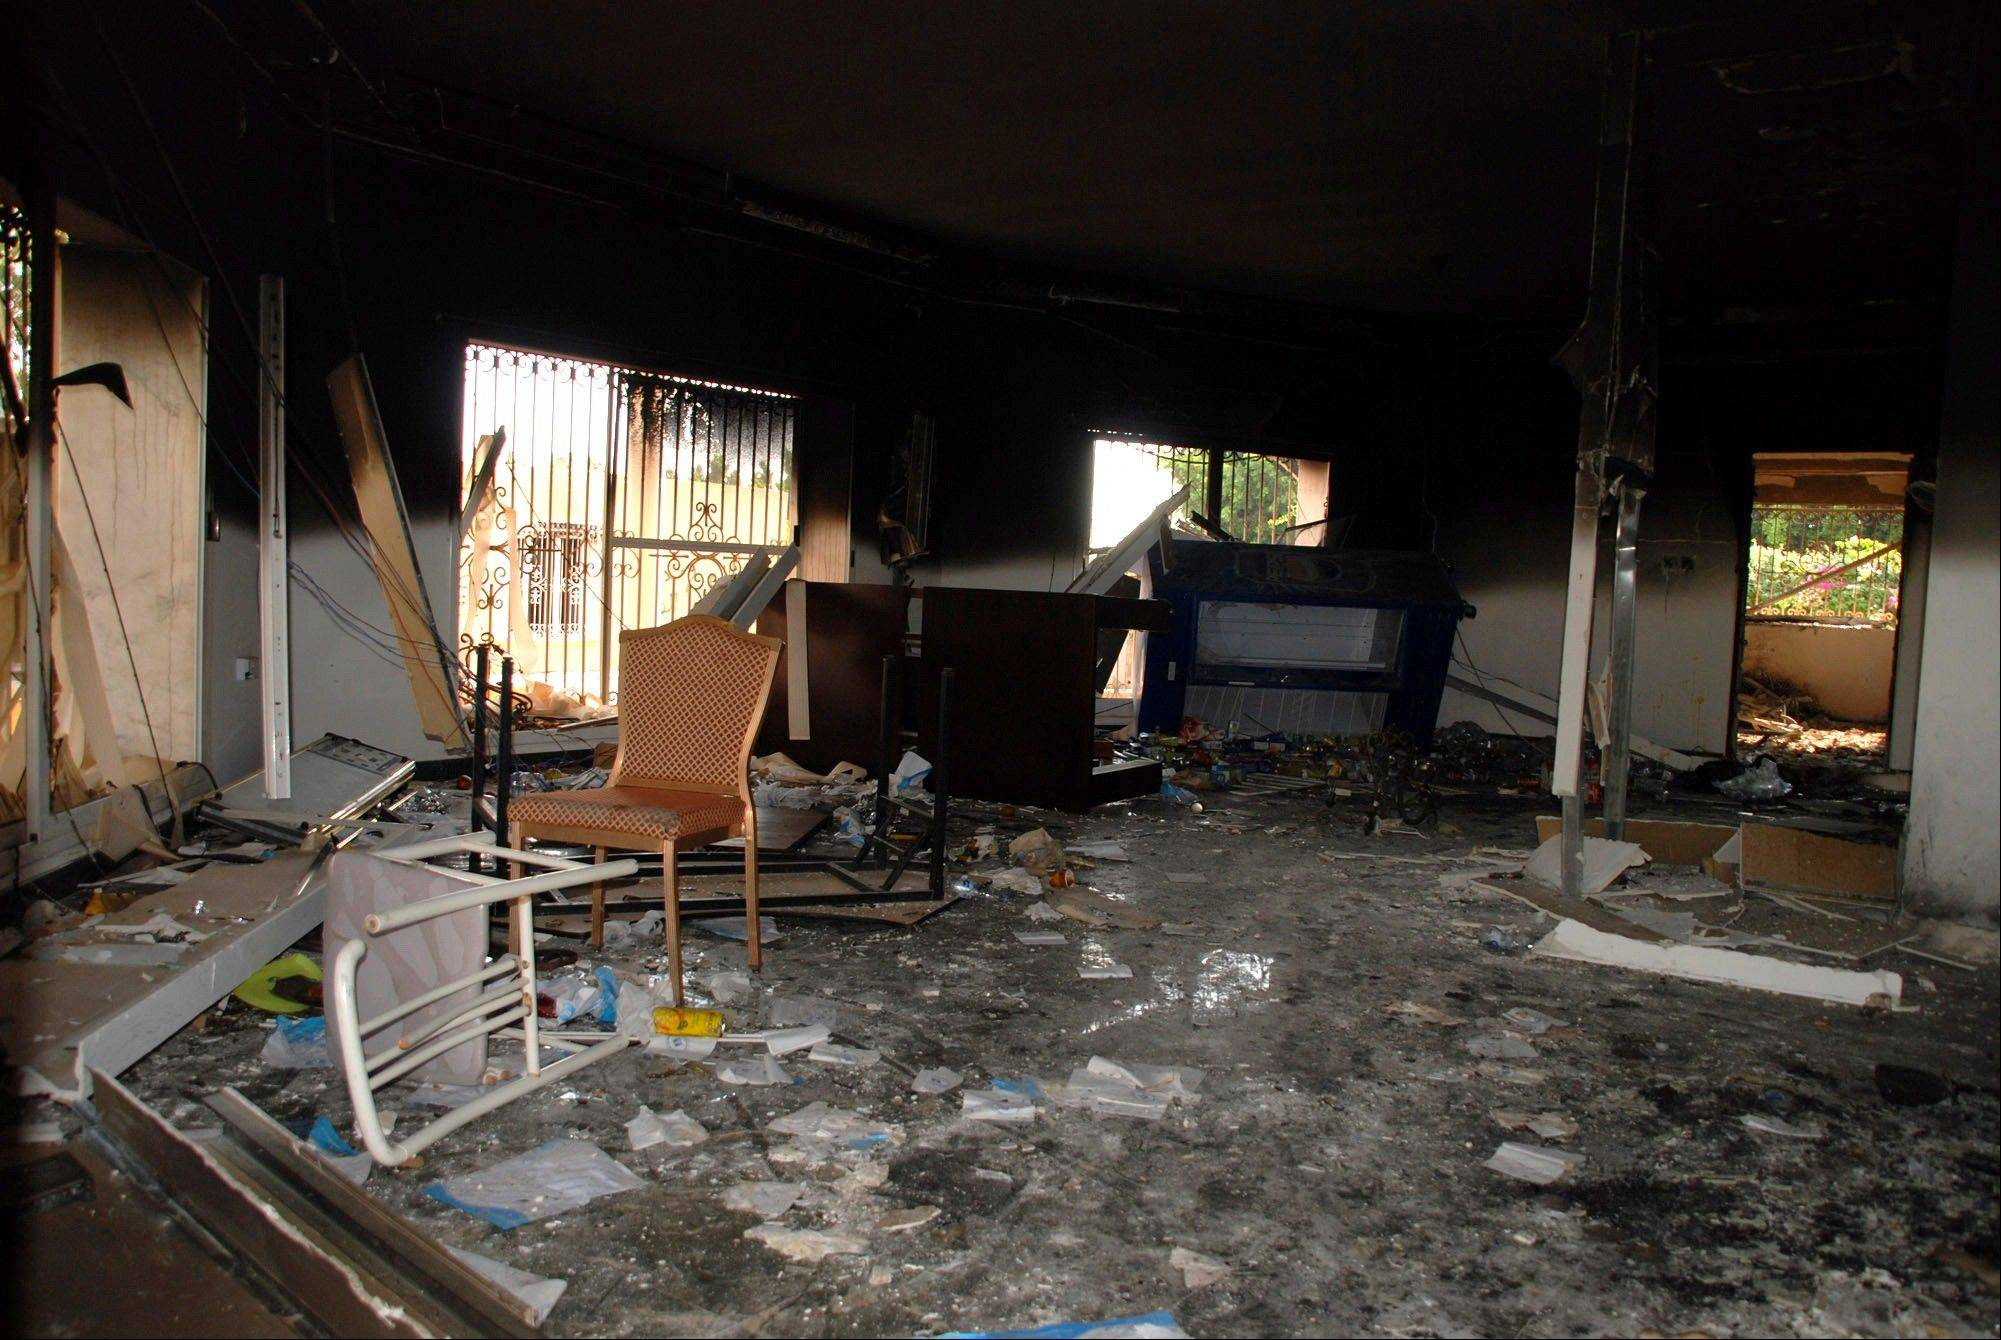 Glass, debris and overturned furniture are strewn inside a room in the gutted U.S. consulate in Benghazi, Libya, after an attack that killed four Americans, including Ambassador Chris Stevens, Wednesday, Sept. 12, 2012.